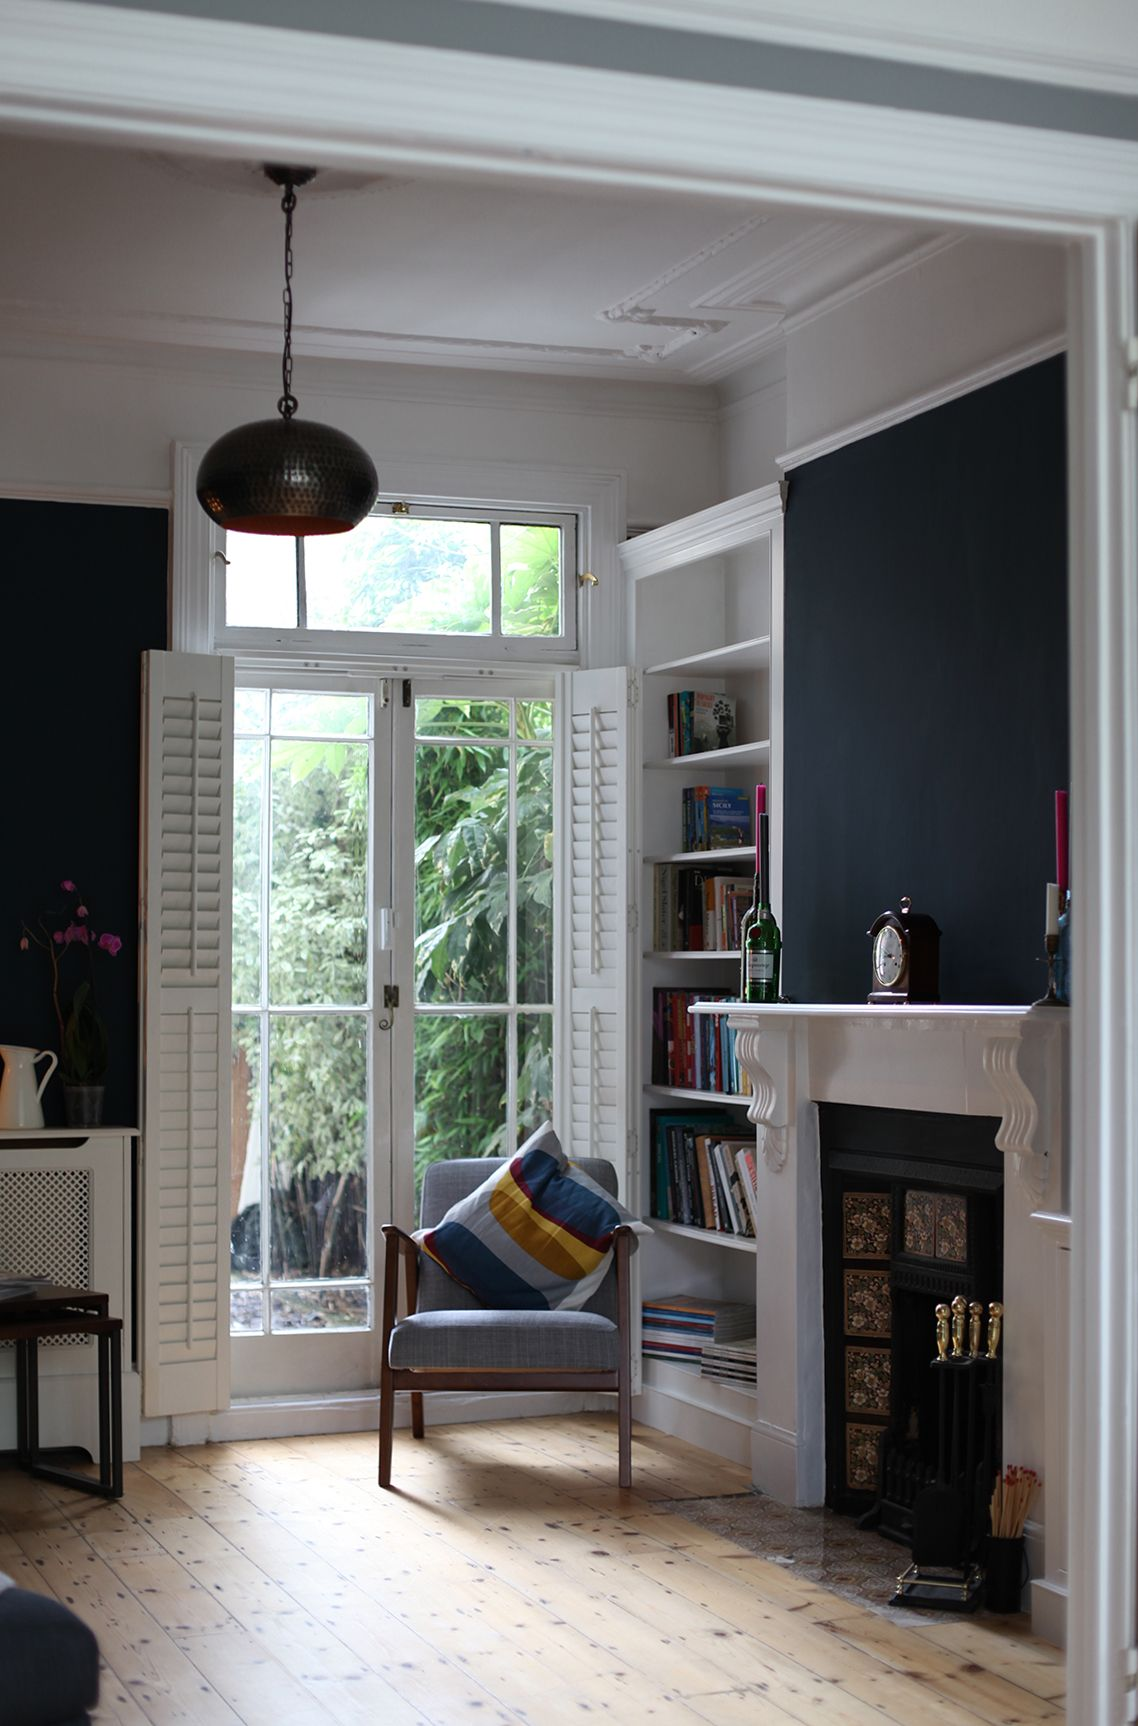 Farrow ball hague blue no 30 estate emulsion for this - Farrow and ball decoration ...